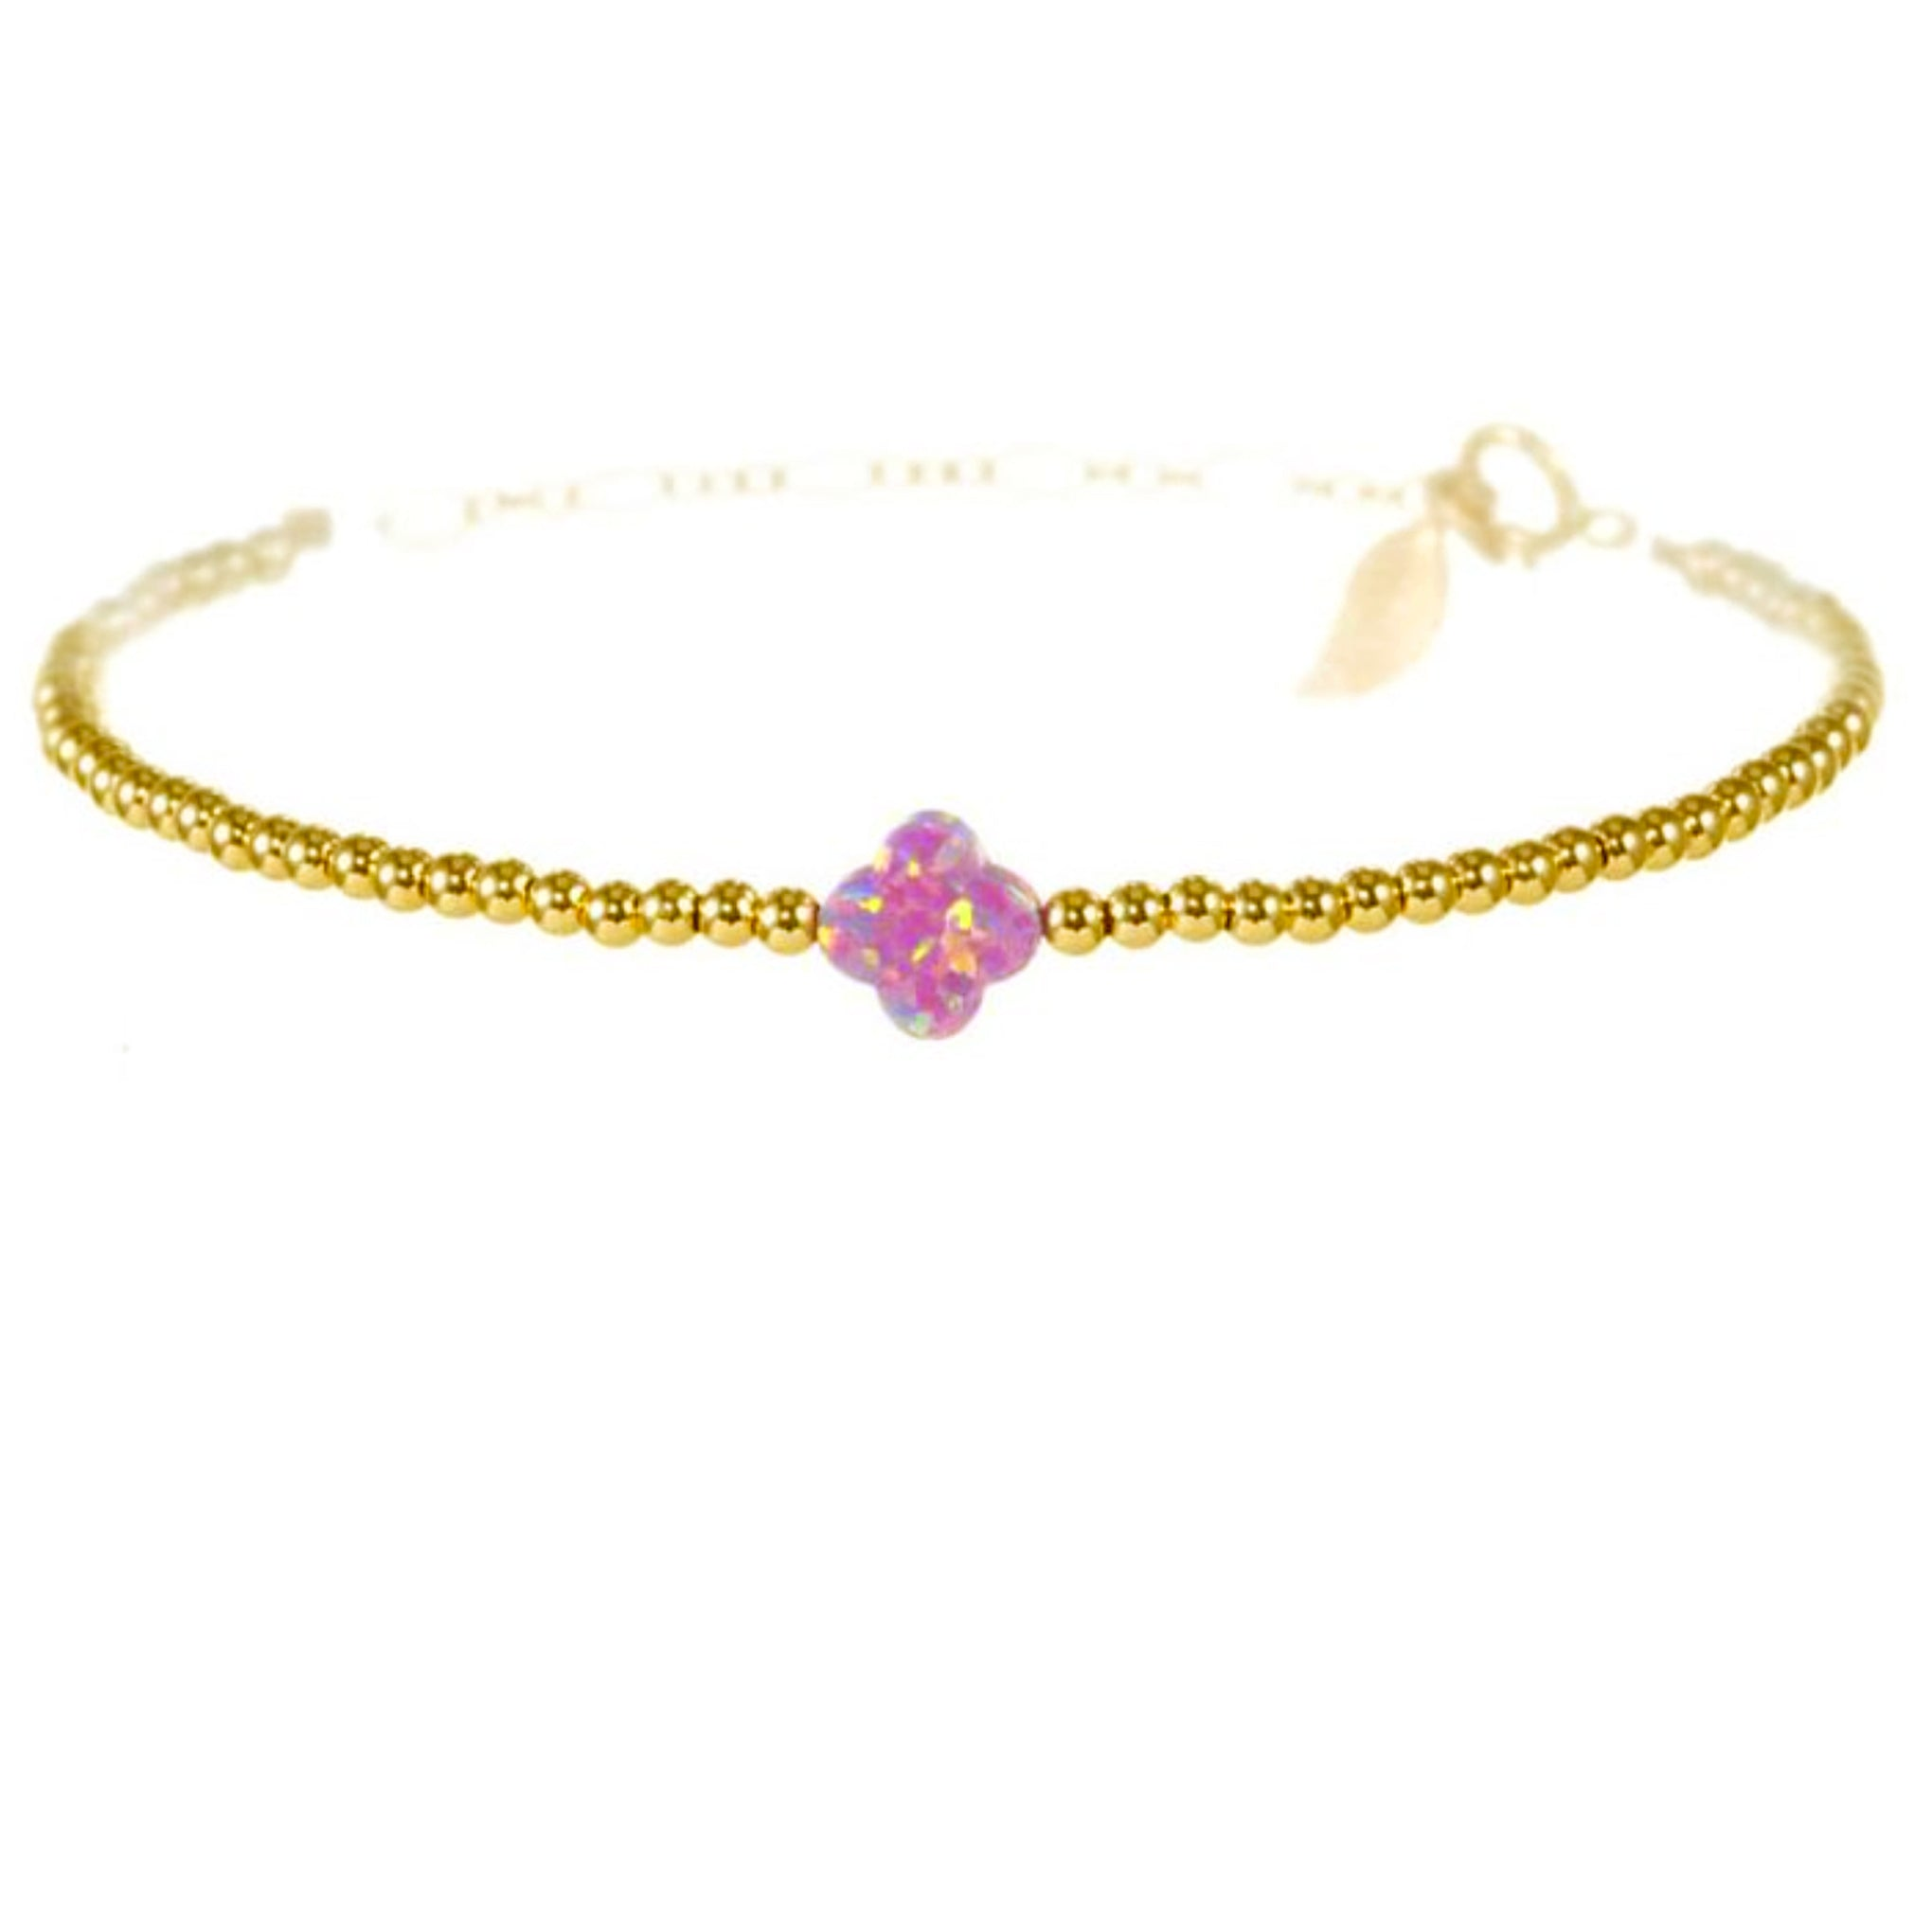 Rainbow Chanceux Clover Lush Lavender Pearl 14KT Gold Ball Beads Bracelet in Butterfly Vibe Collection